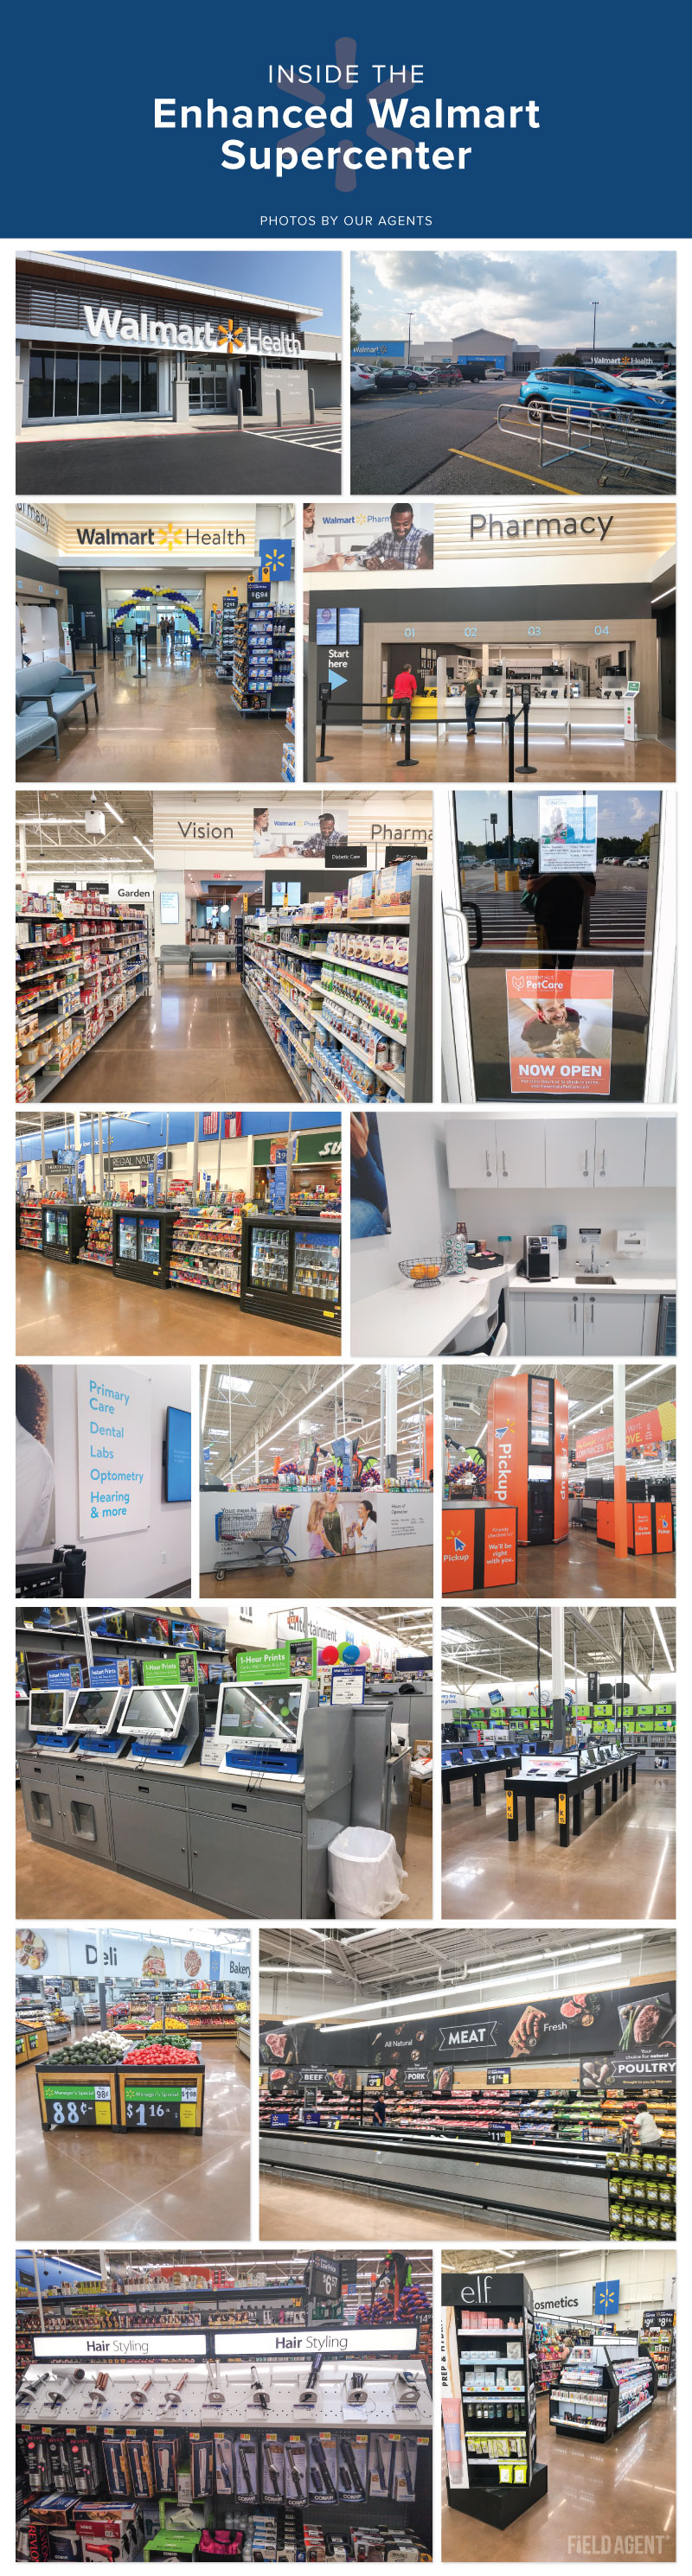 Walmart Enhanced Superstore Agent Photos